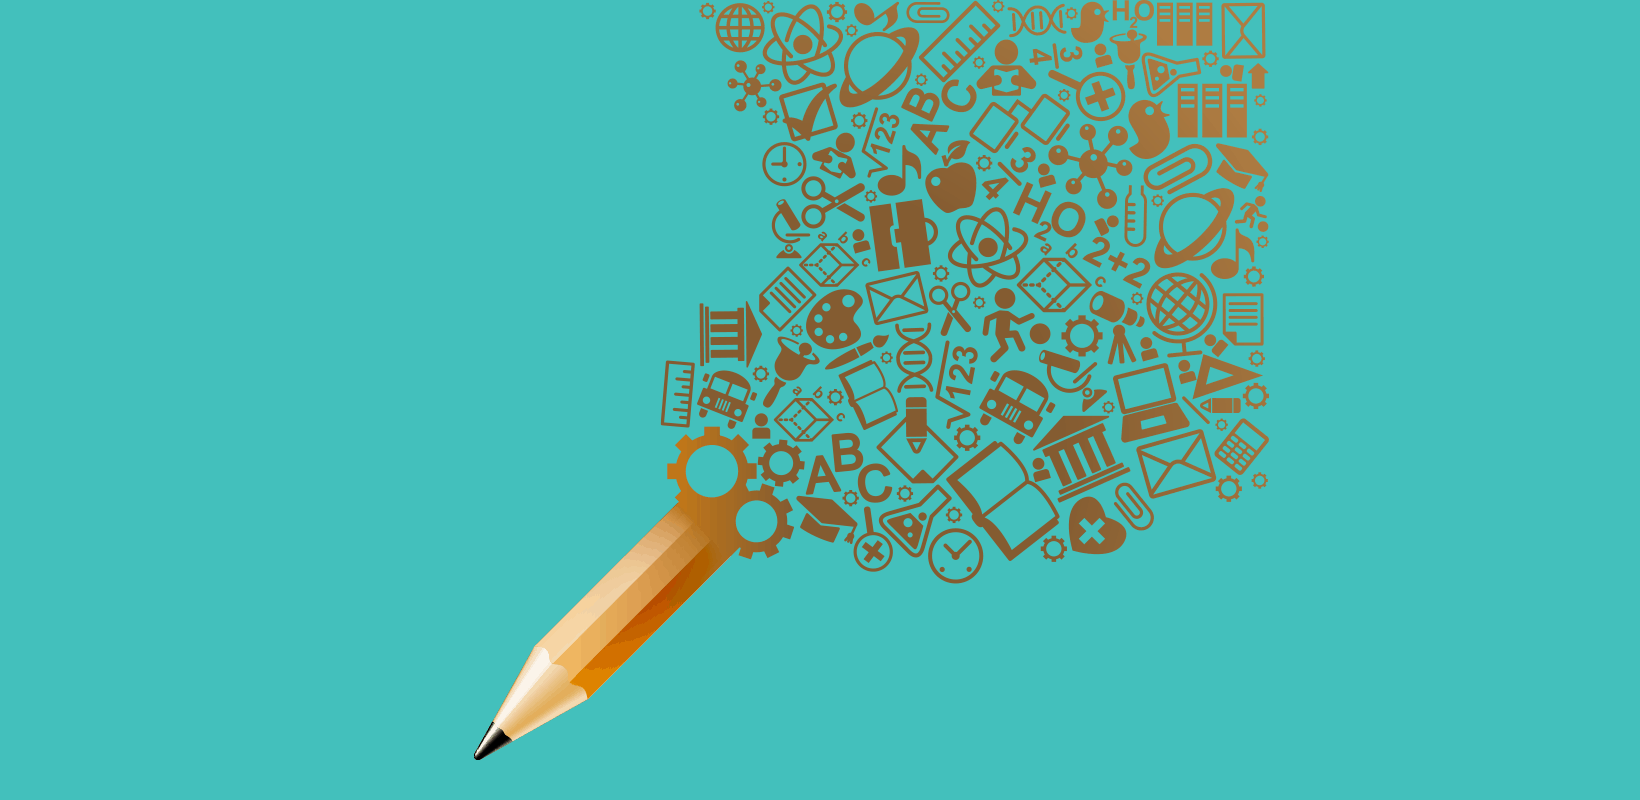 How to use data visualization - image of a pencil powered by information icons